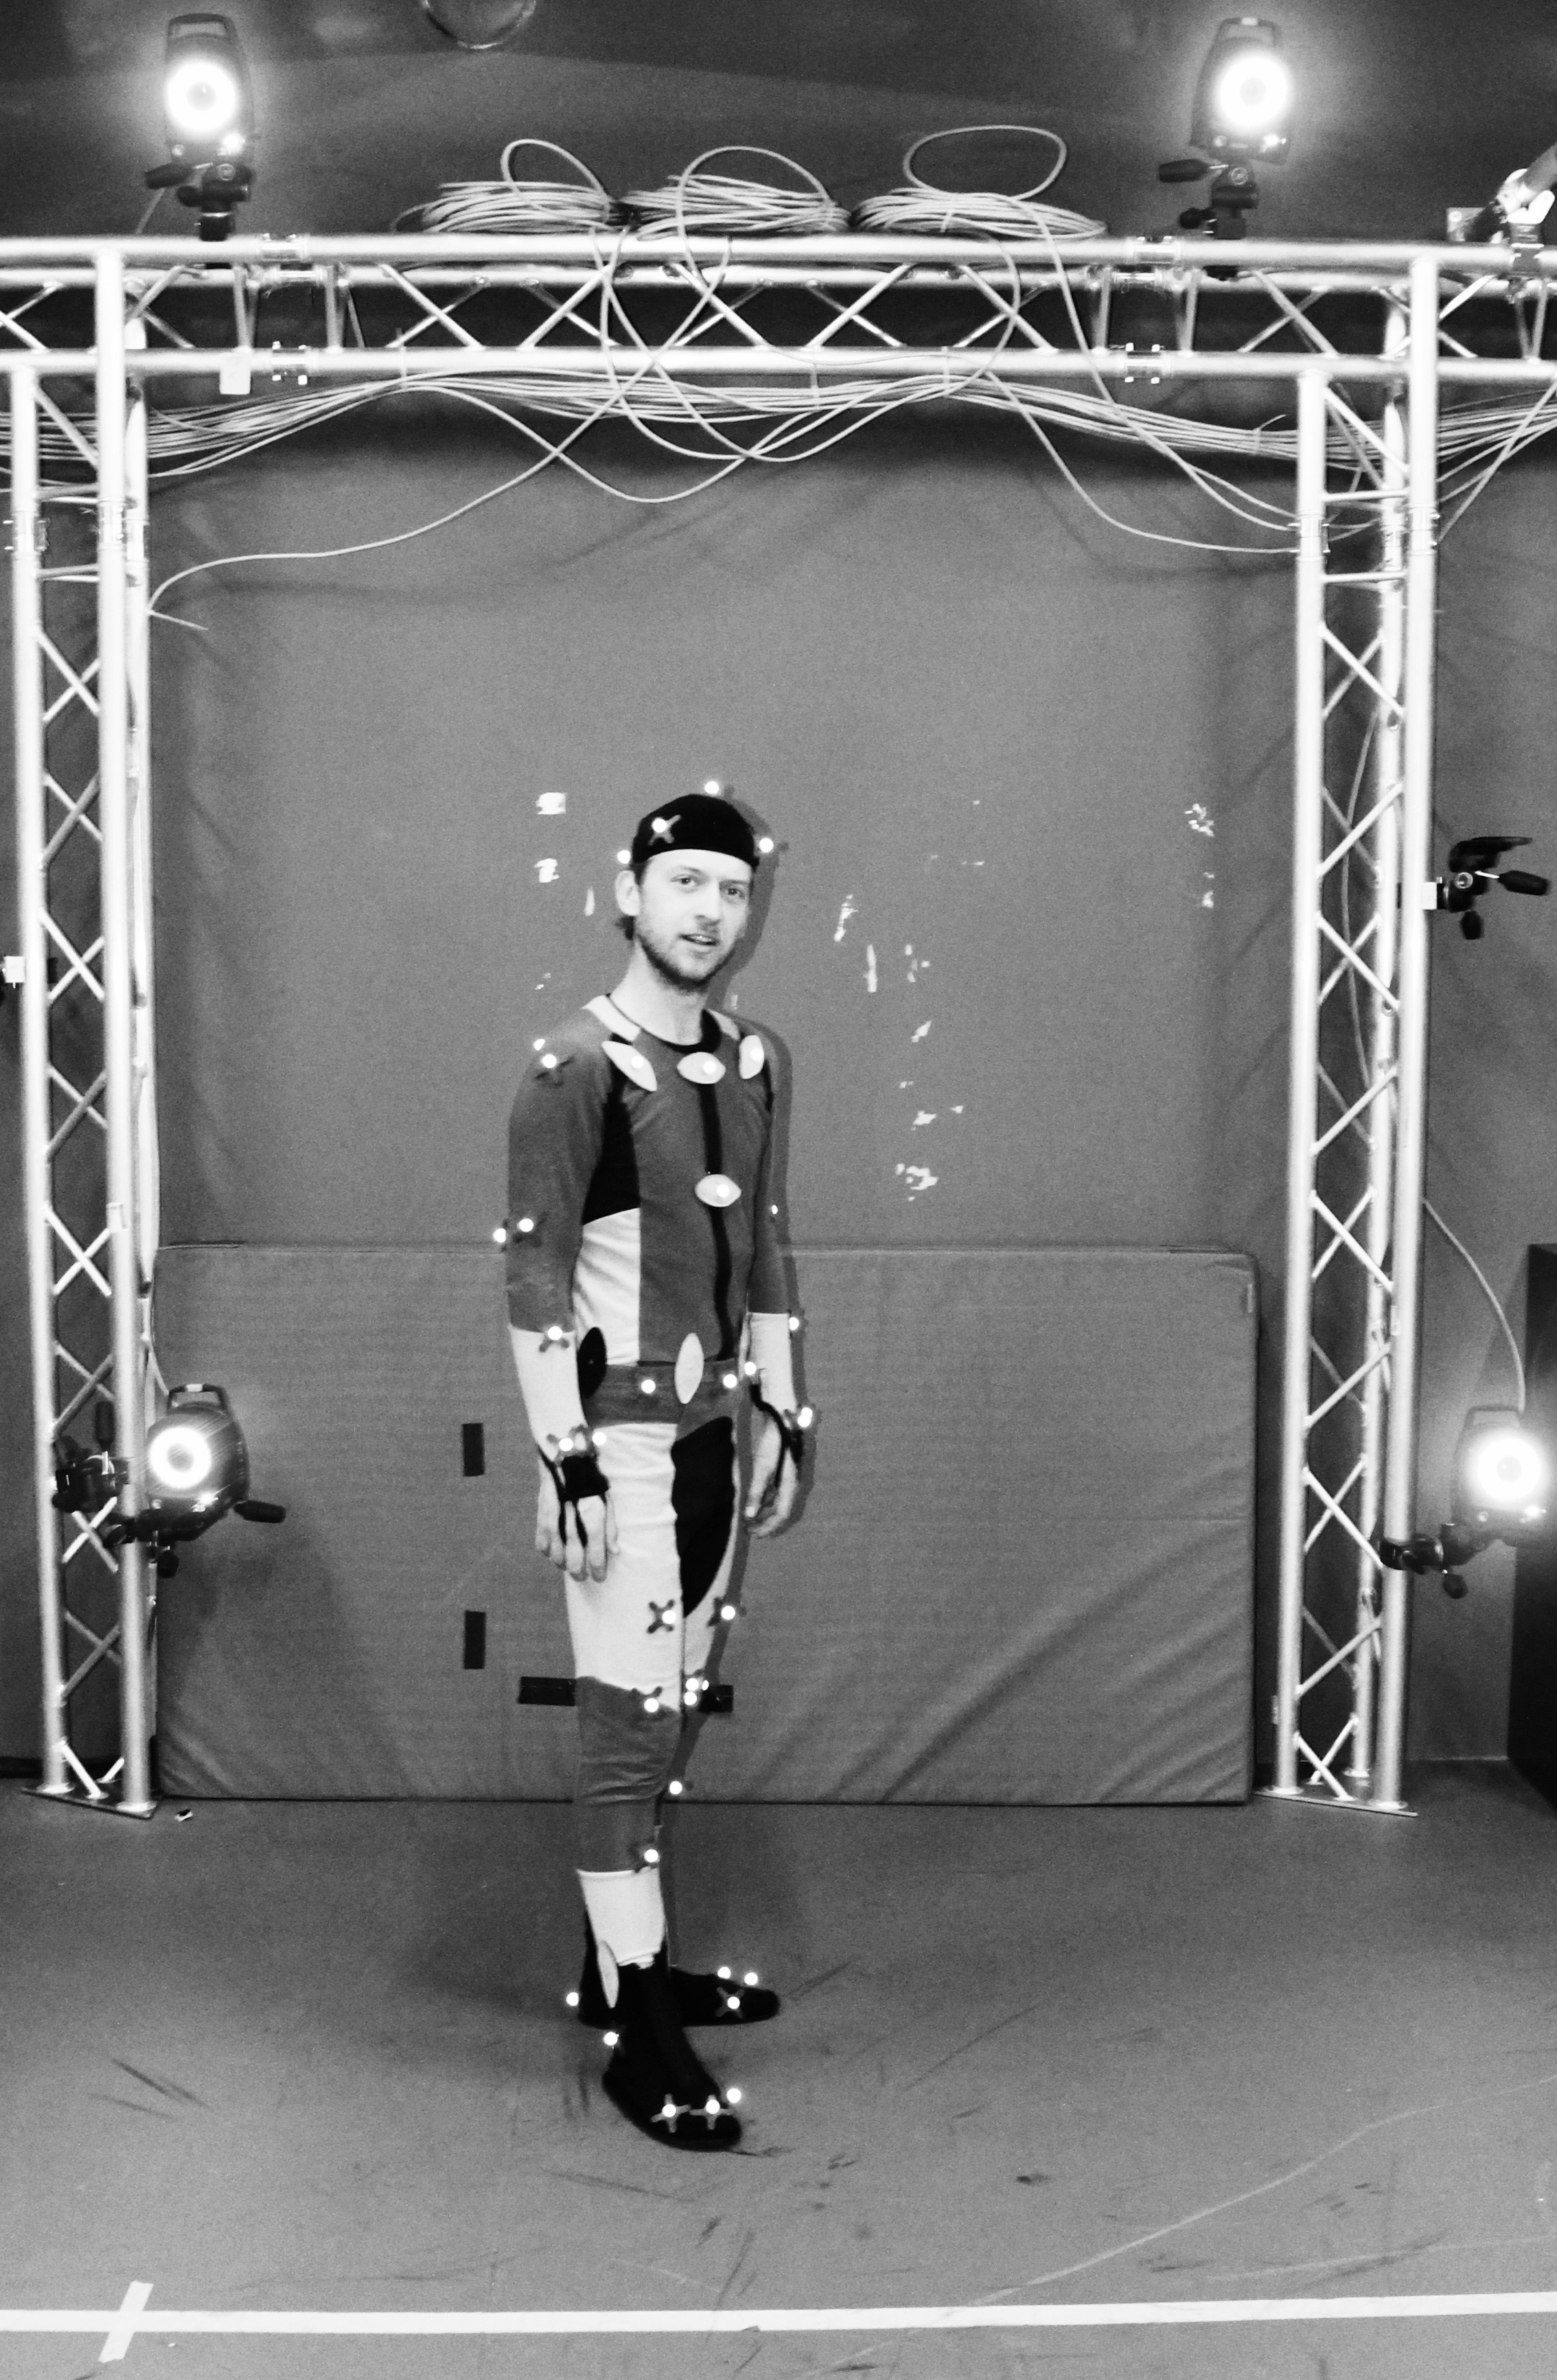 TOBIAS NIEROP MOTION CAPTURE